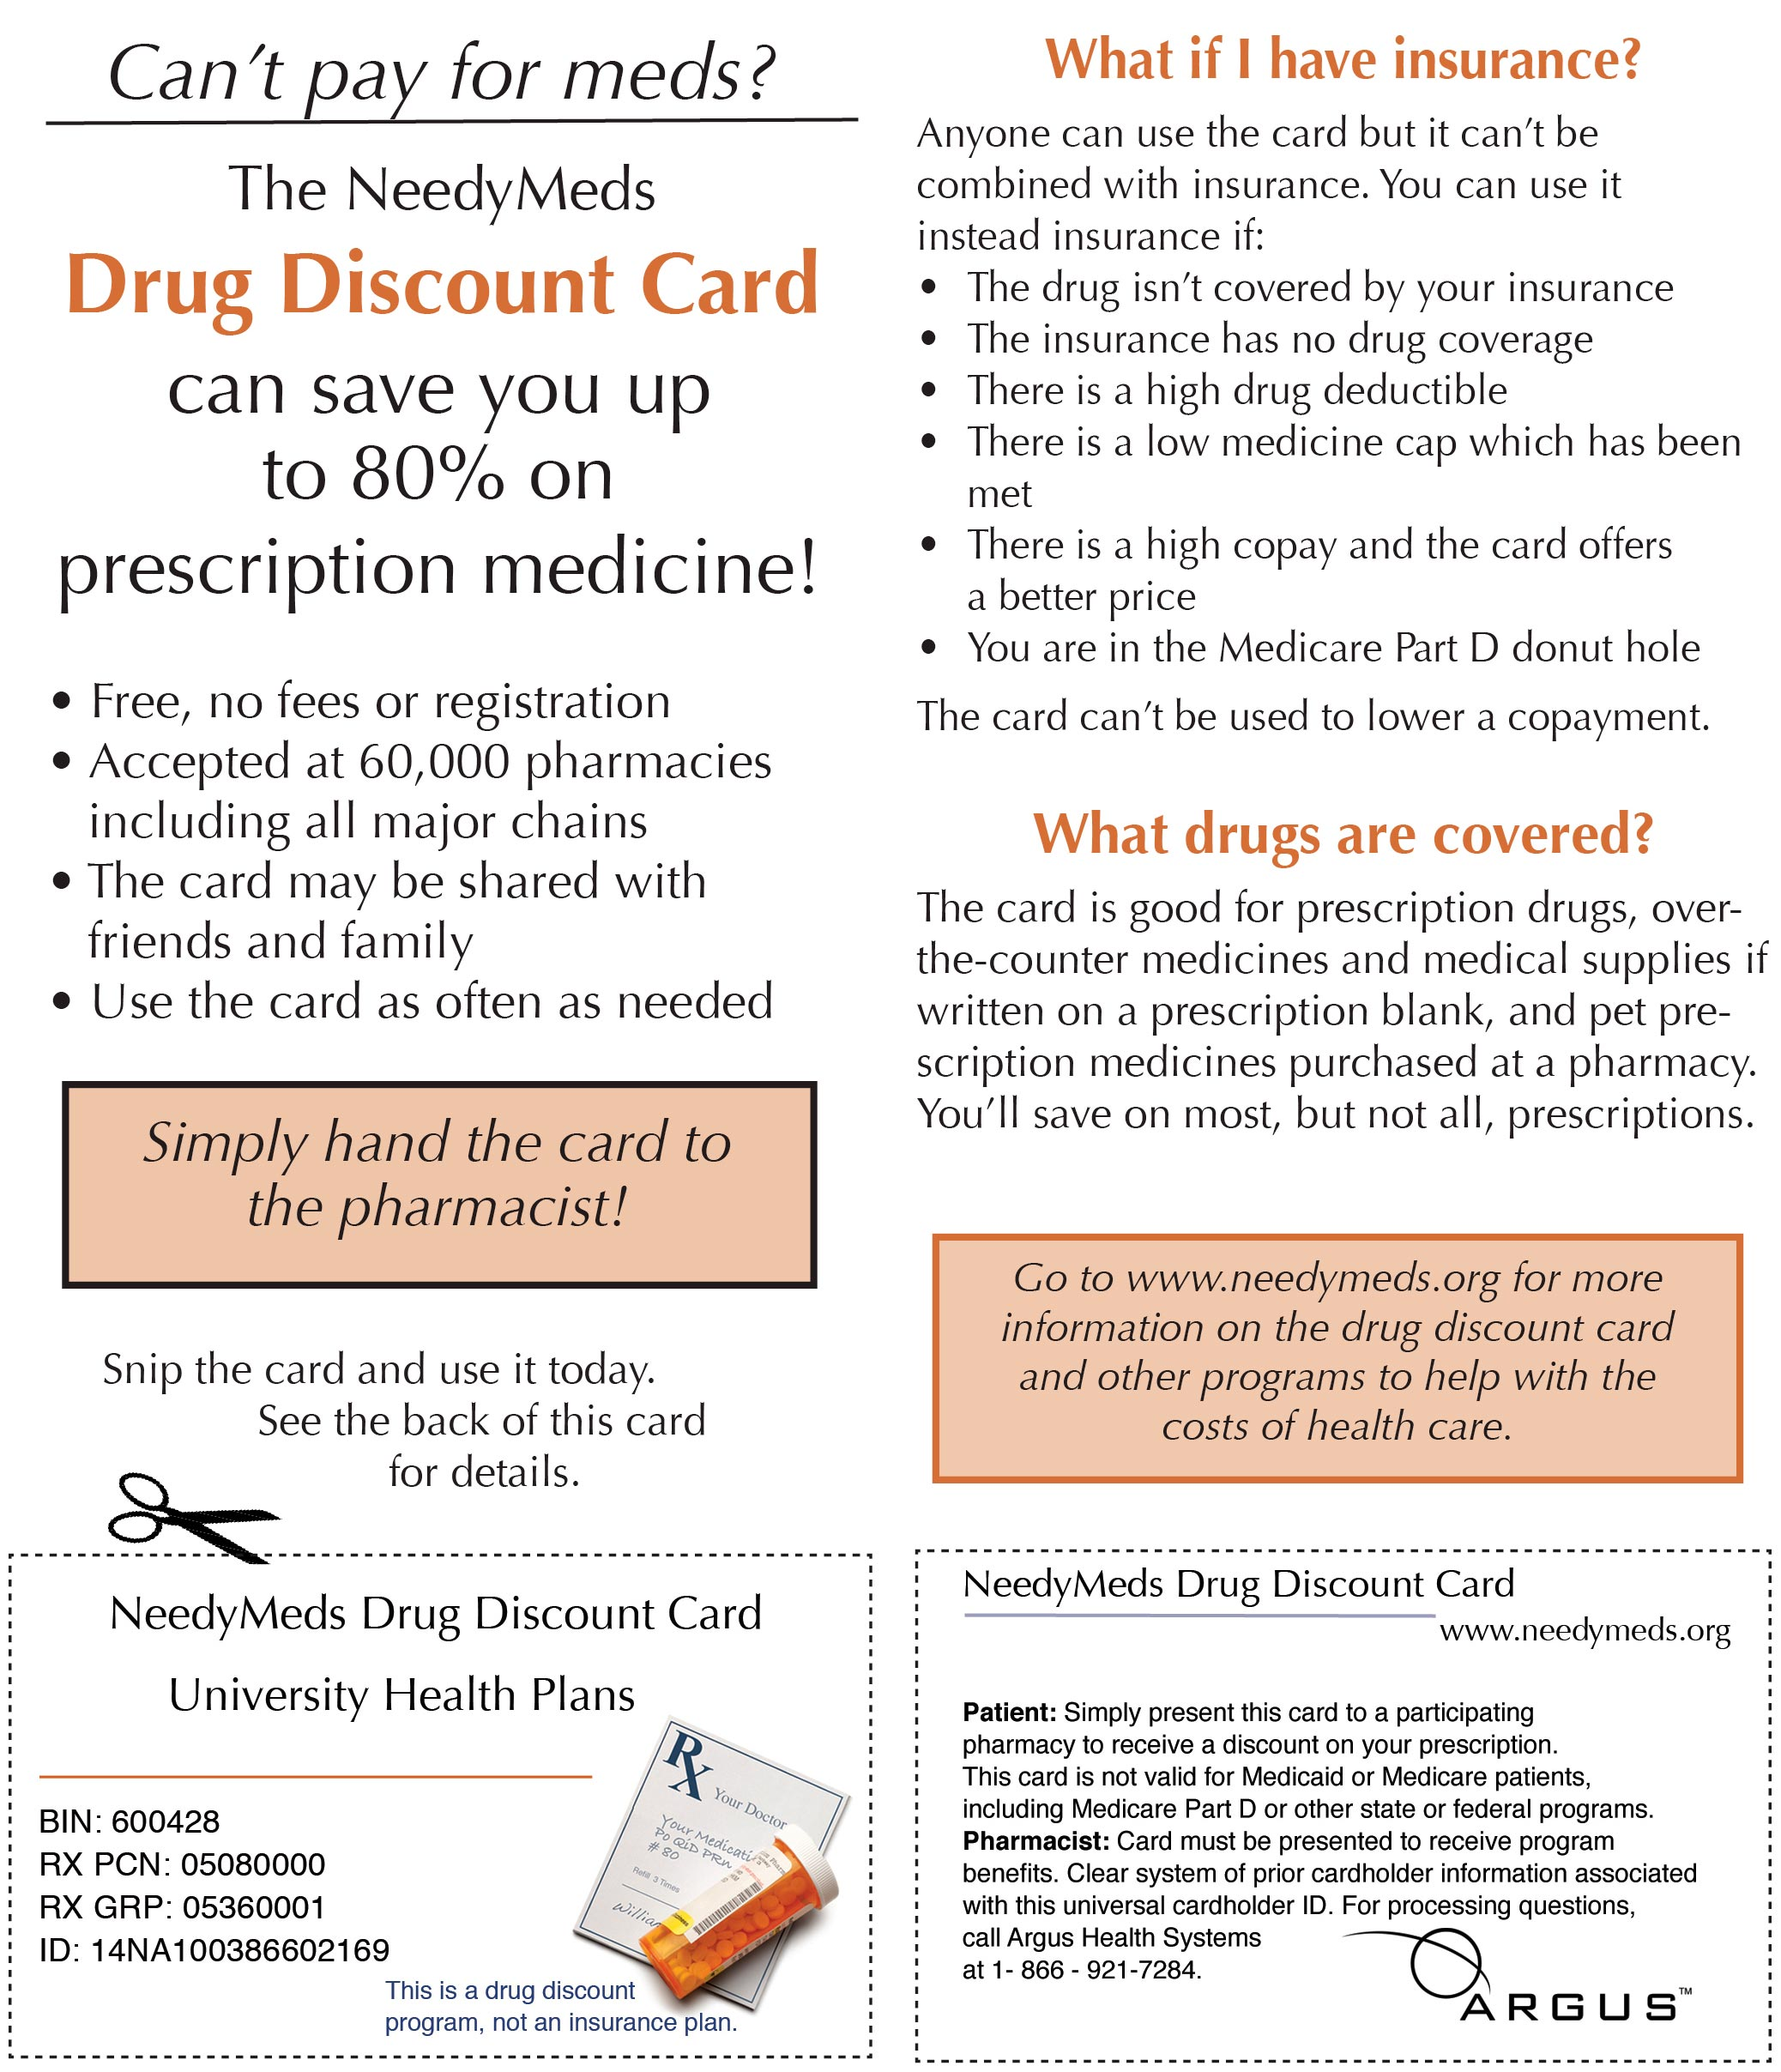 NeedyMeds Drug Discount Flyer/Card - University Health Plans